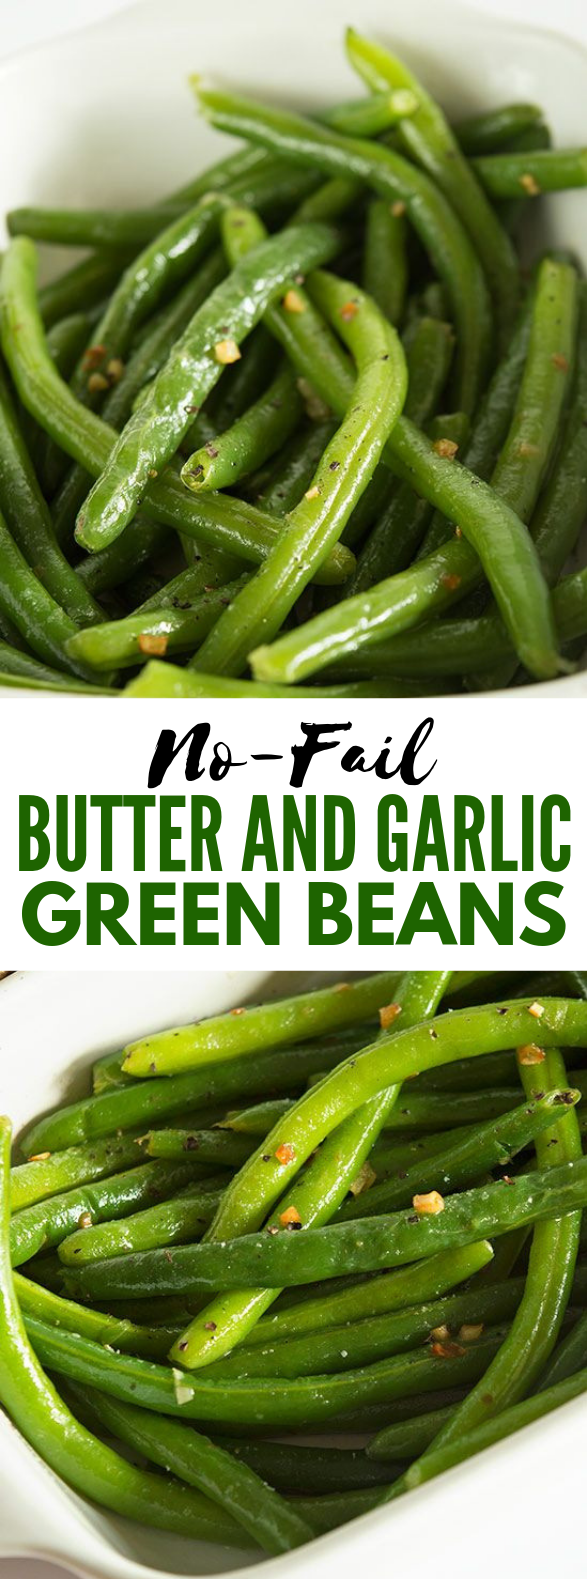 No-fail Butter and Garlic Green Beans #vegetable #veggies